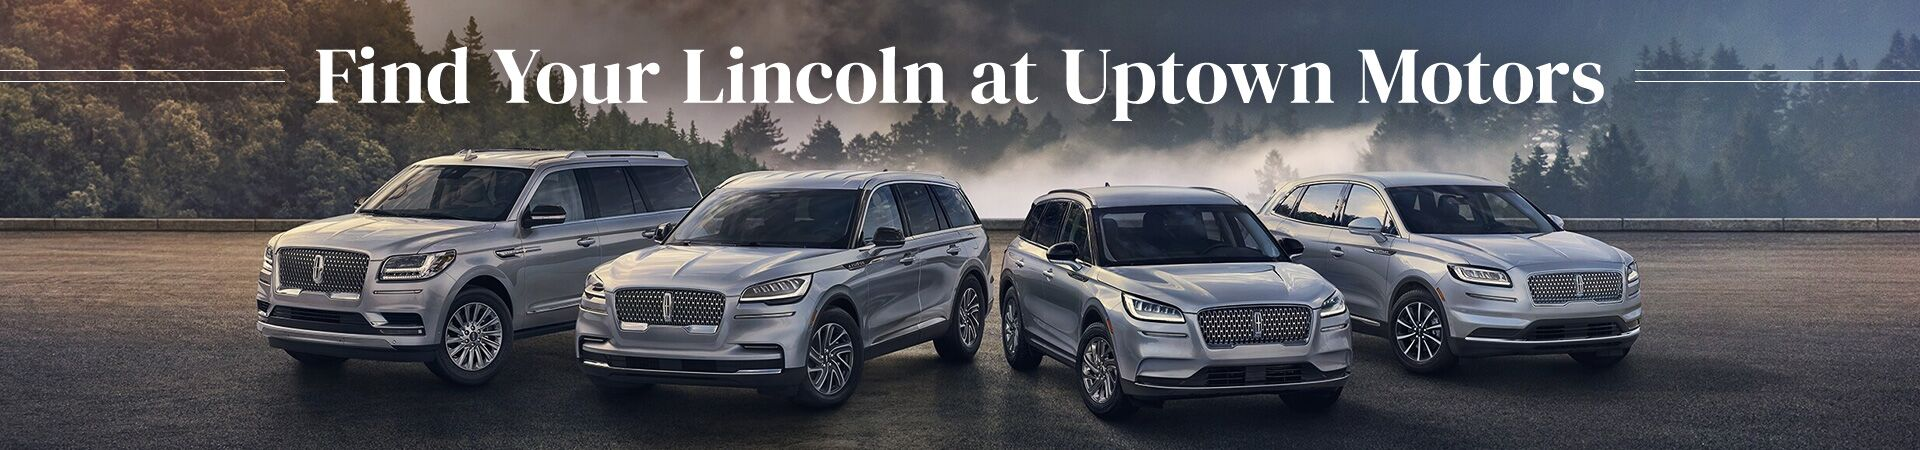 Find Your Lincoln Here at Uptown Motors